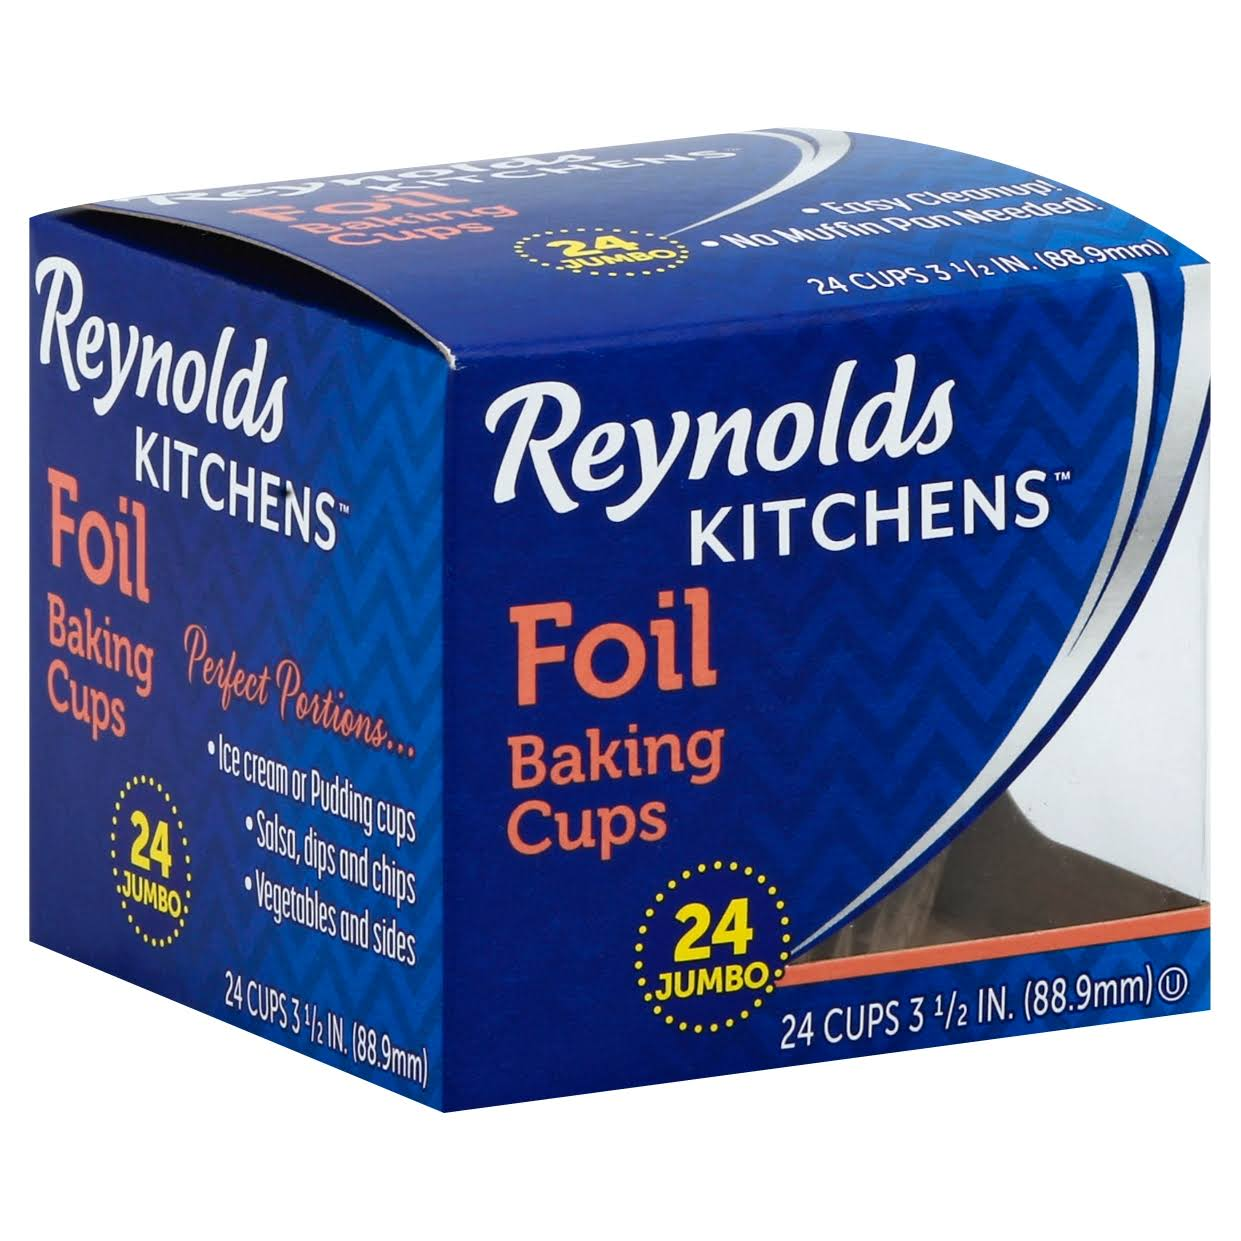 Reynolds Foil Baking Cups - Jumbo, 288 ct